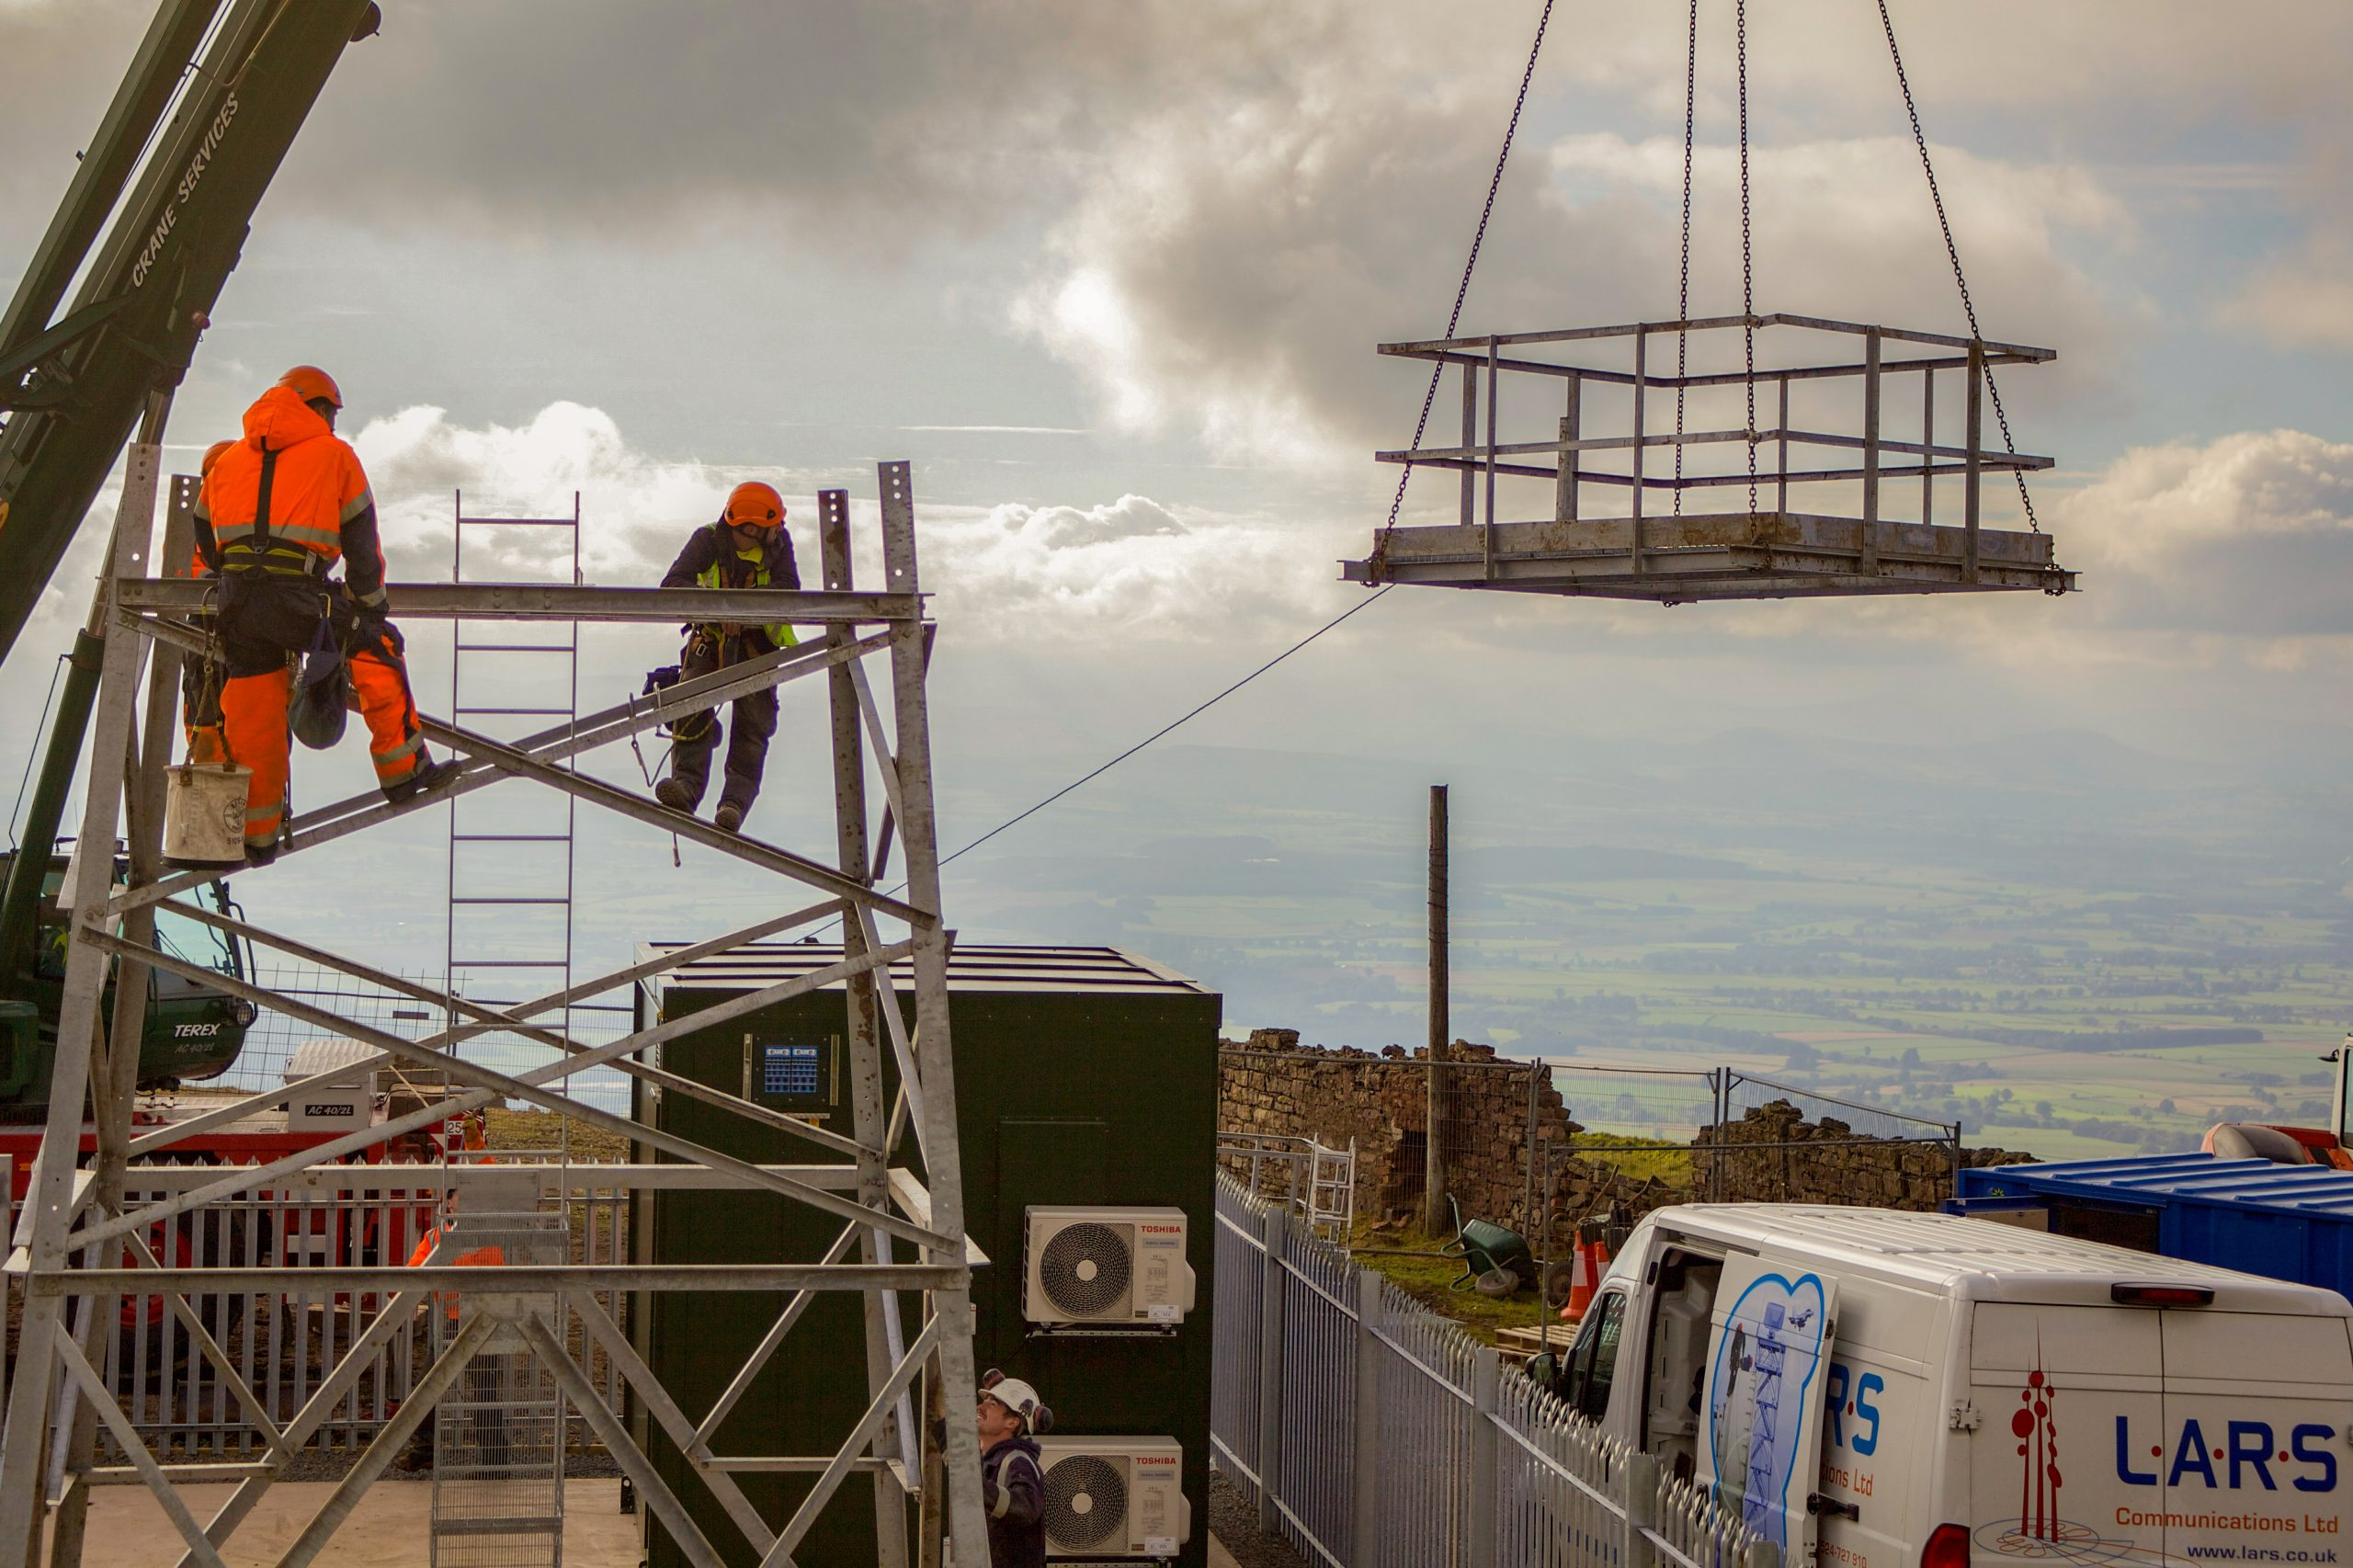 Great Dun Fell Tower Installation and Radio Site Build